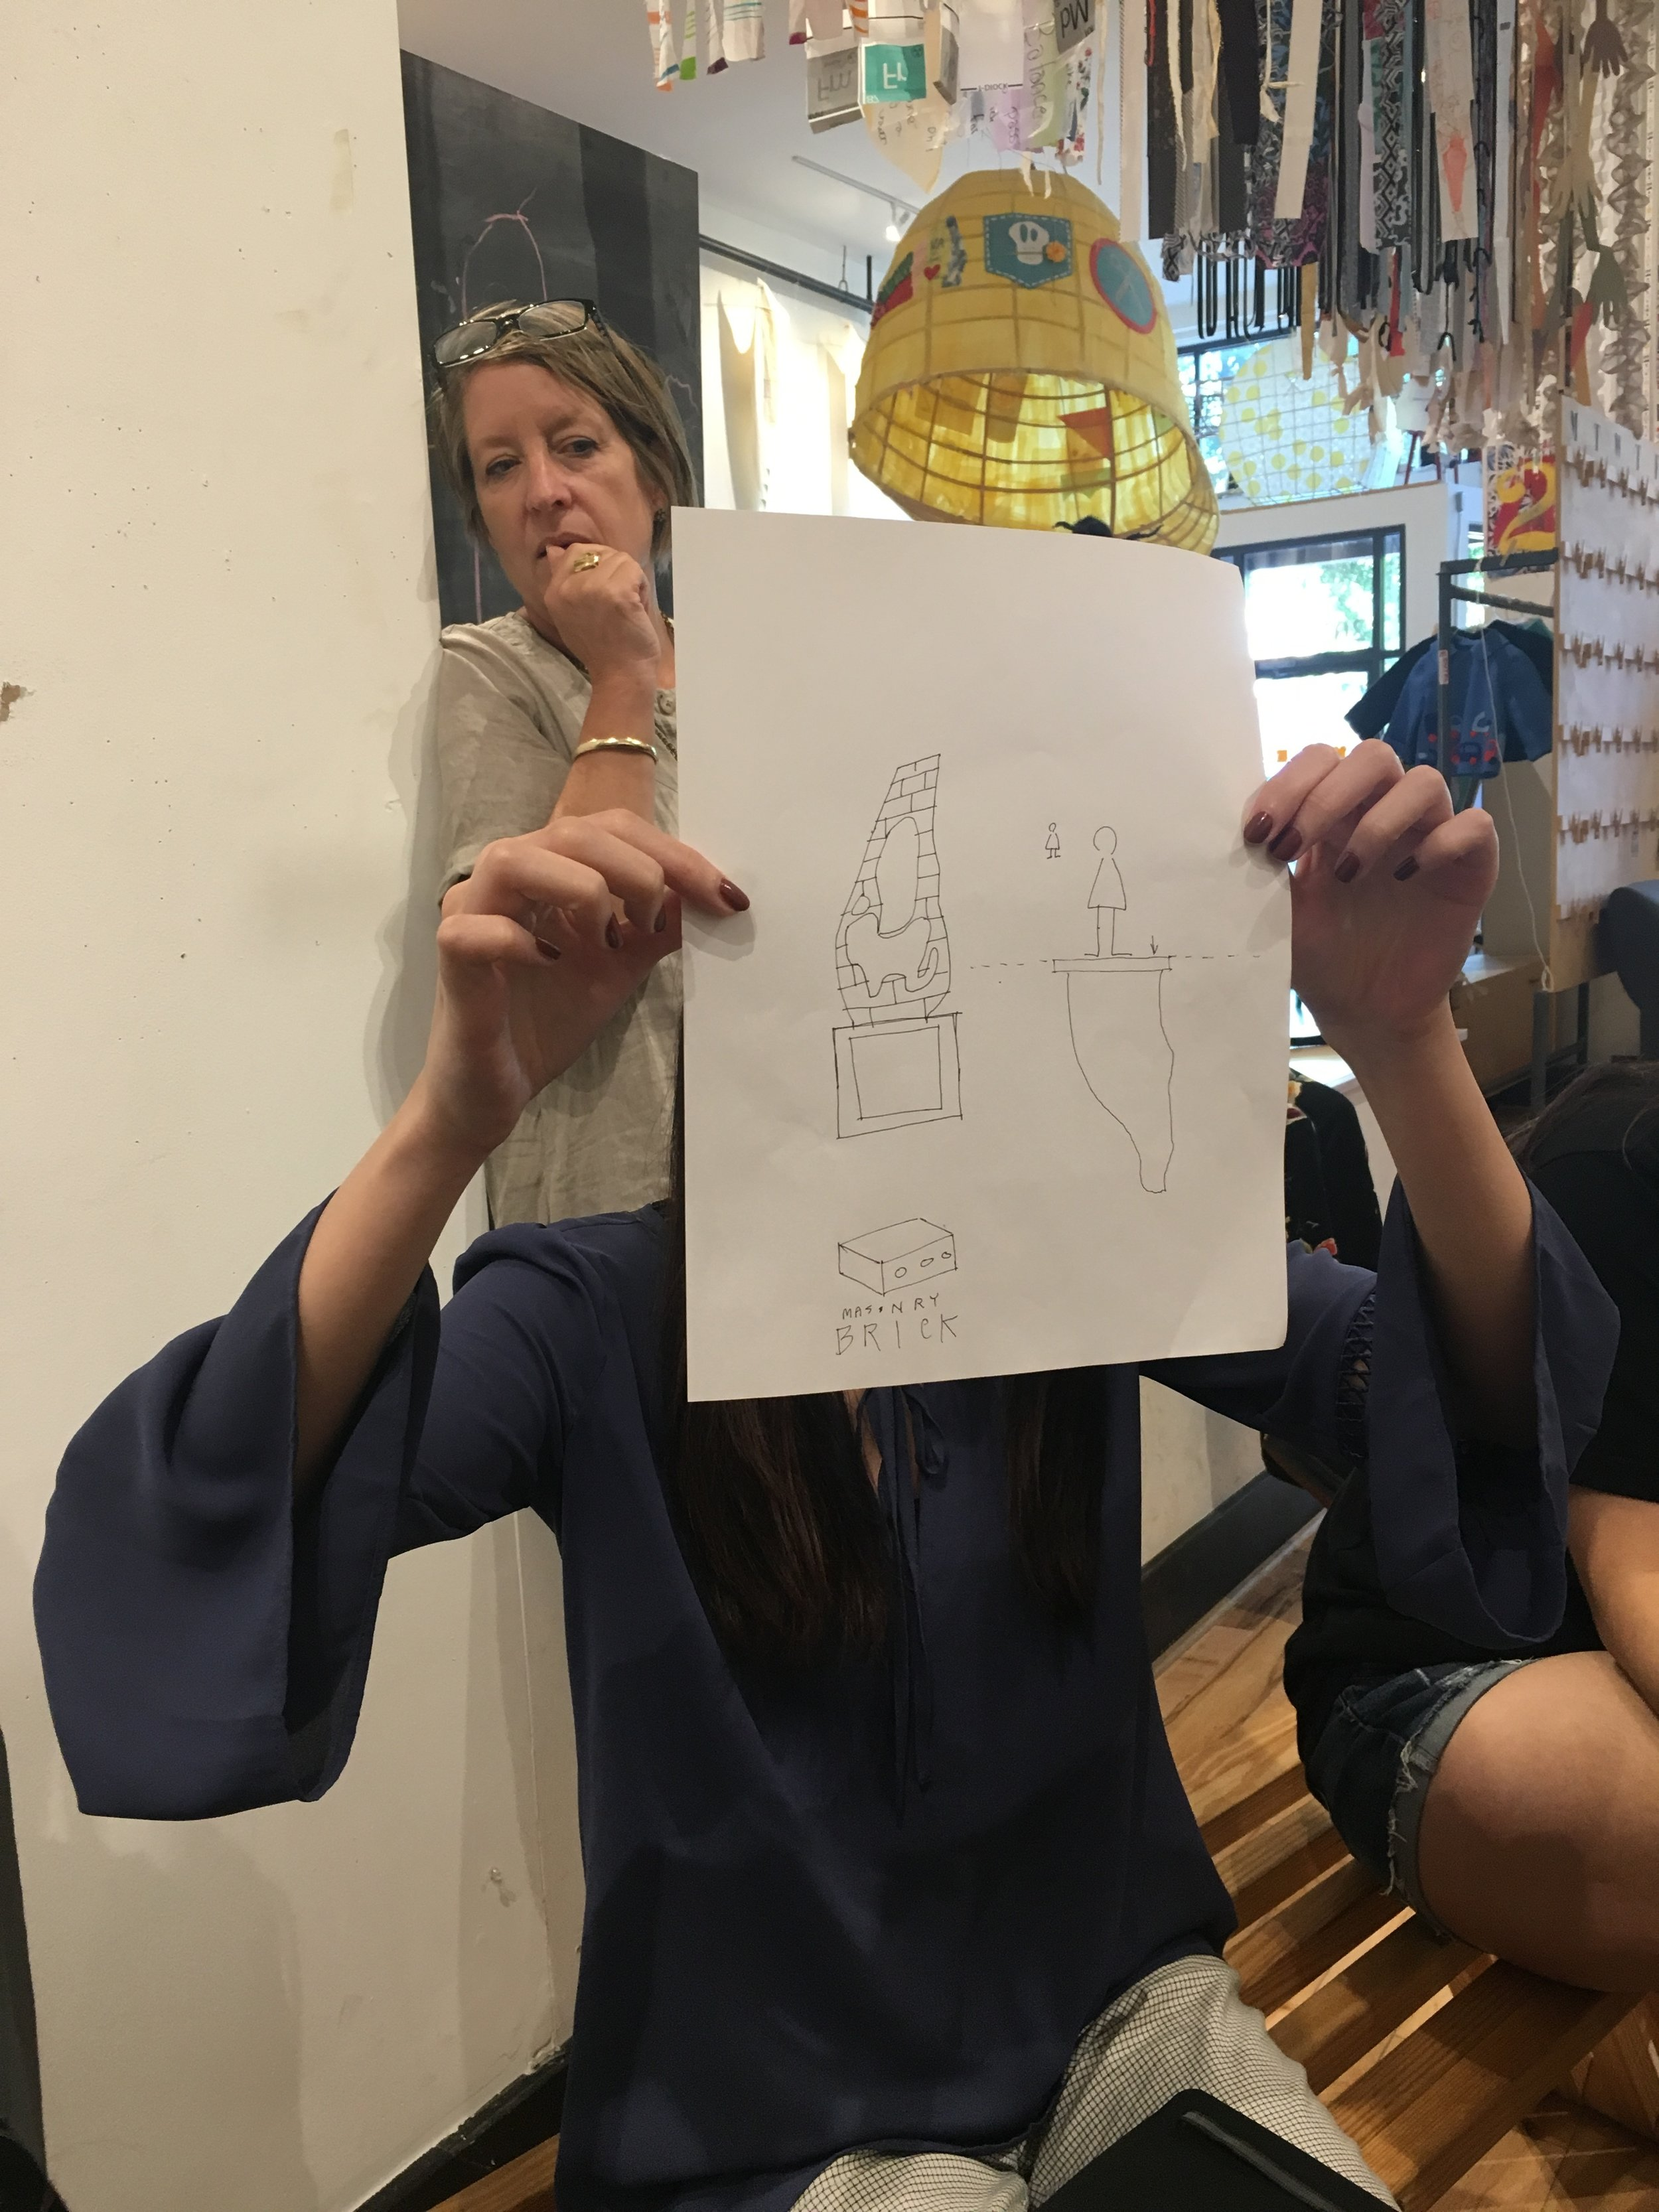 Shown below, undergraduate mOb students are working on sketches of monuments that they would like to see in Richmond. What might you make a monument to in this city?